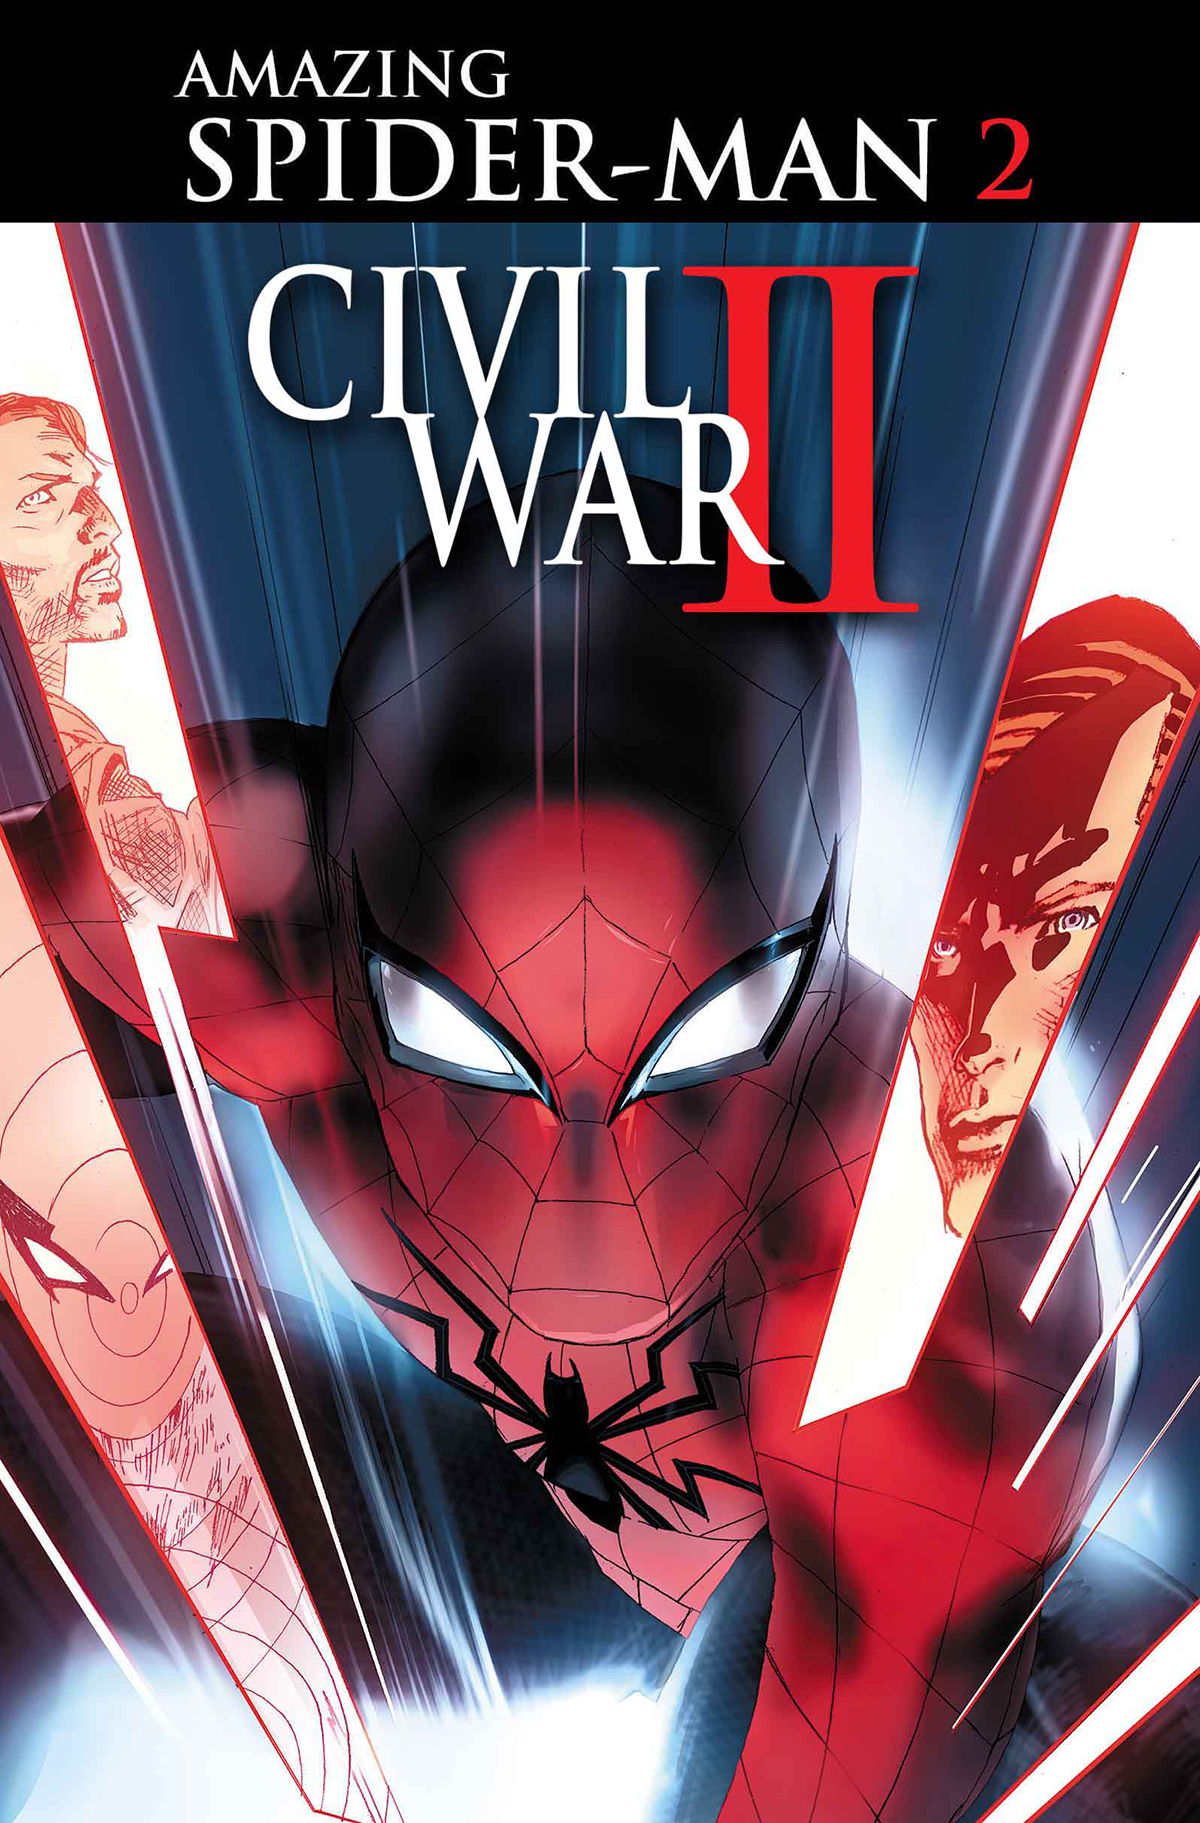 CIVIL WAR II AMAZING SPIDER-MAN #2 (OF 4)